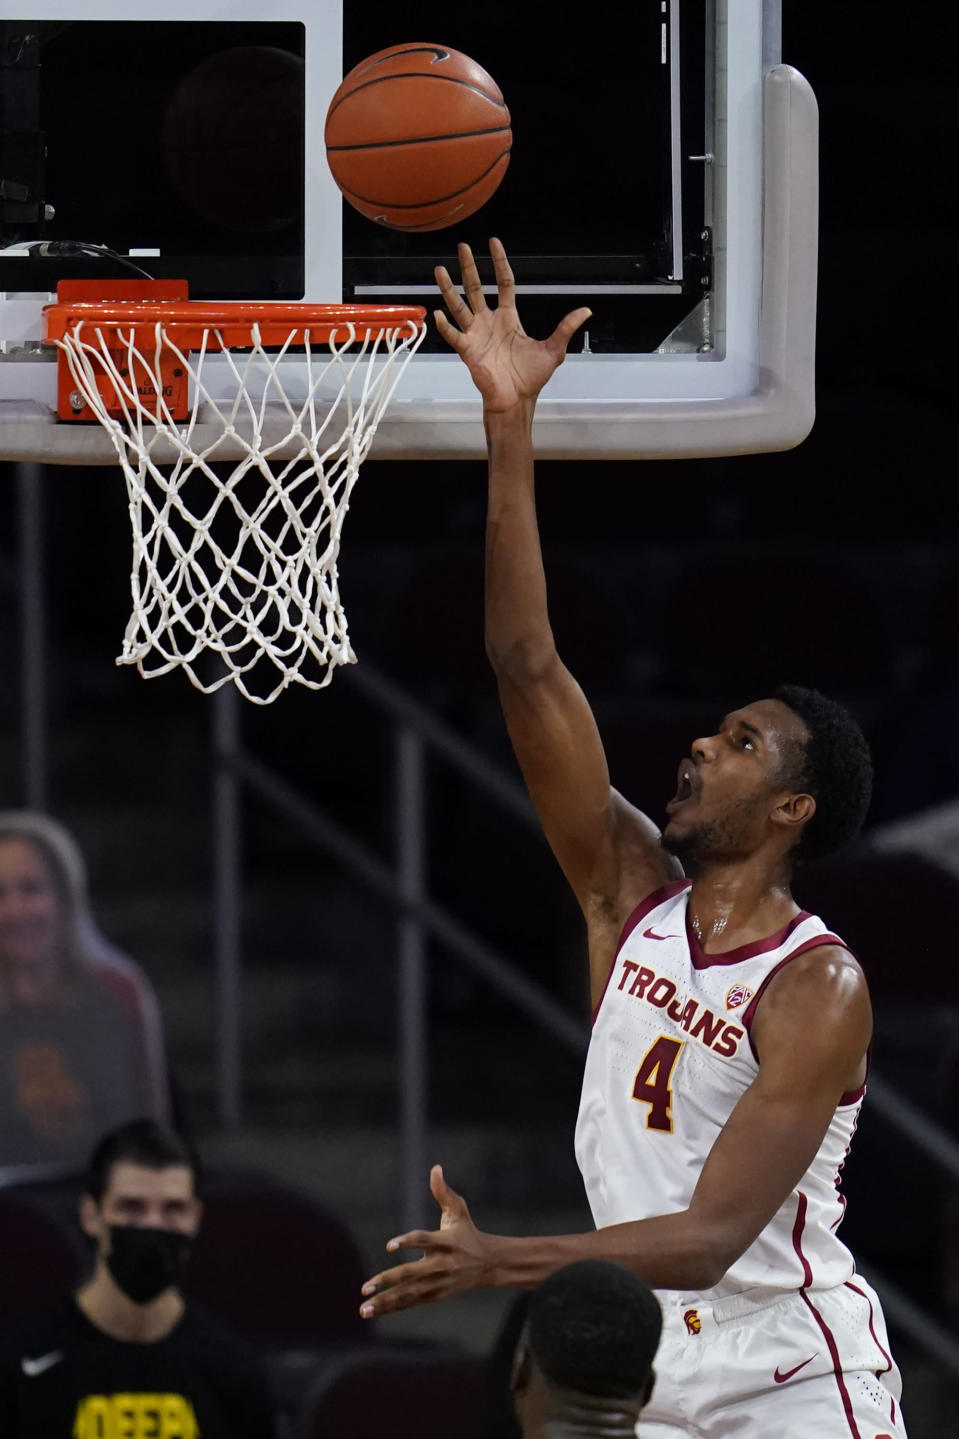 Southern California forward Evan Mobley (4) shoots during the first half of an NCAA college basketball game against Oregon Monday, Feb. 22, 2021, in Los Angeles. (AP Photo/Ashley Landis)